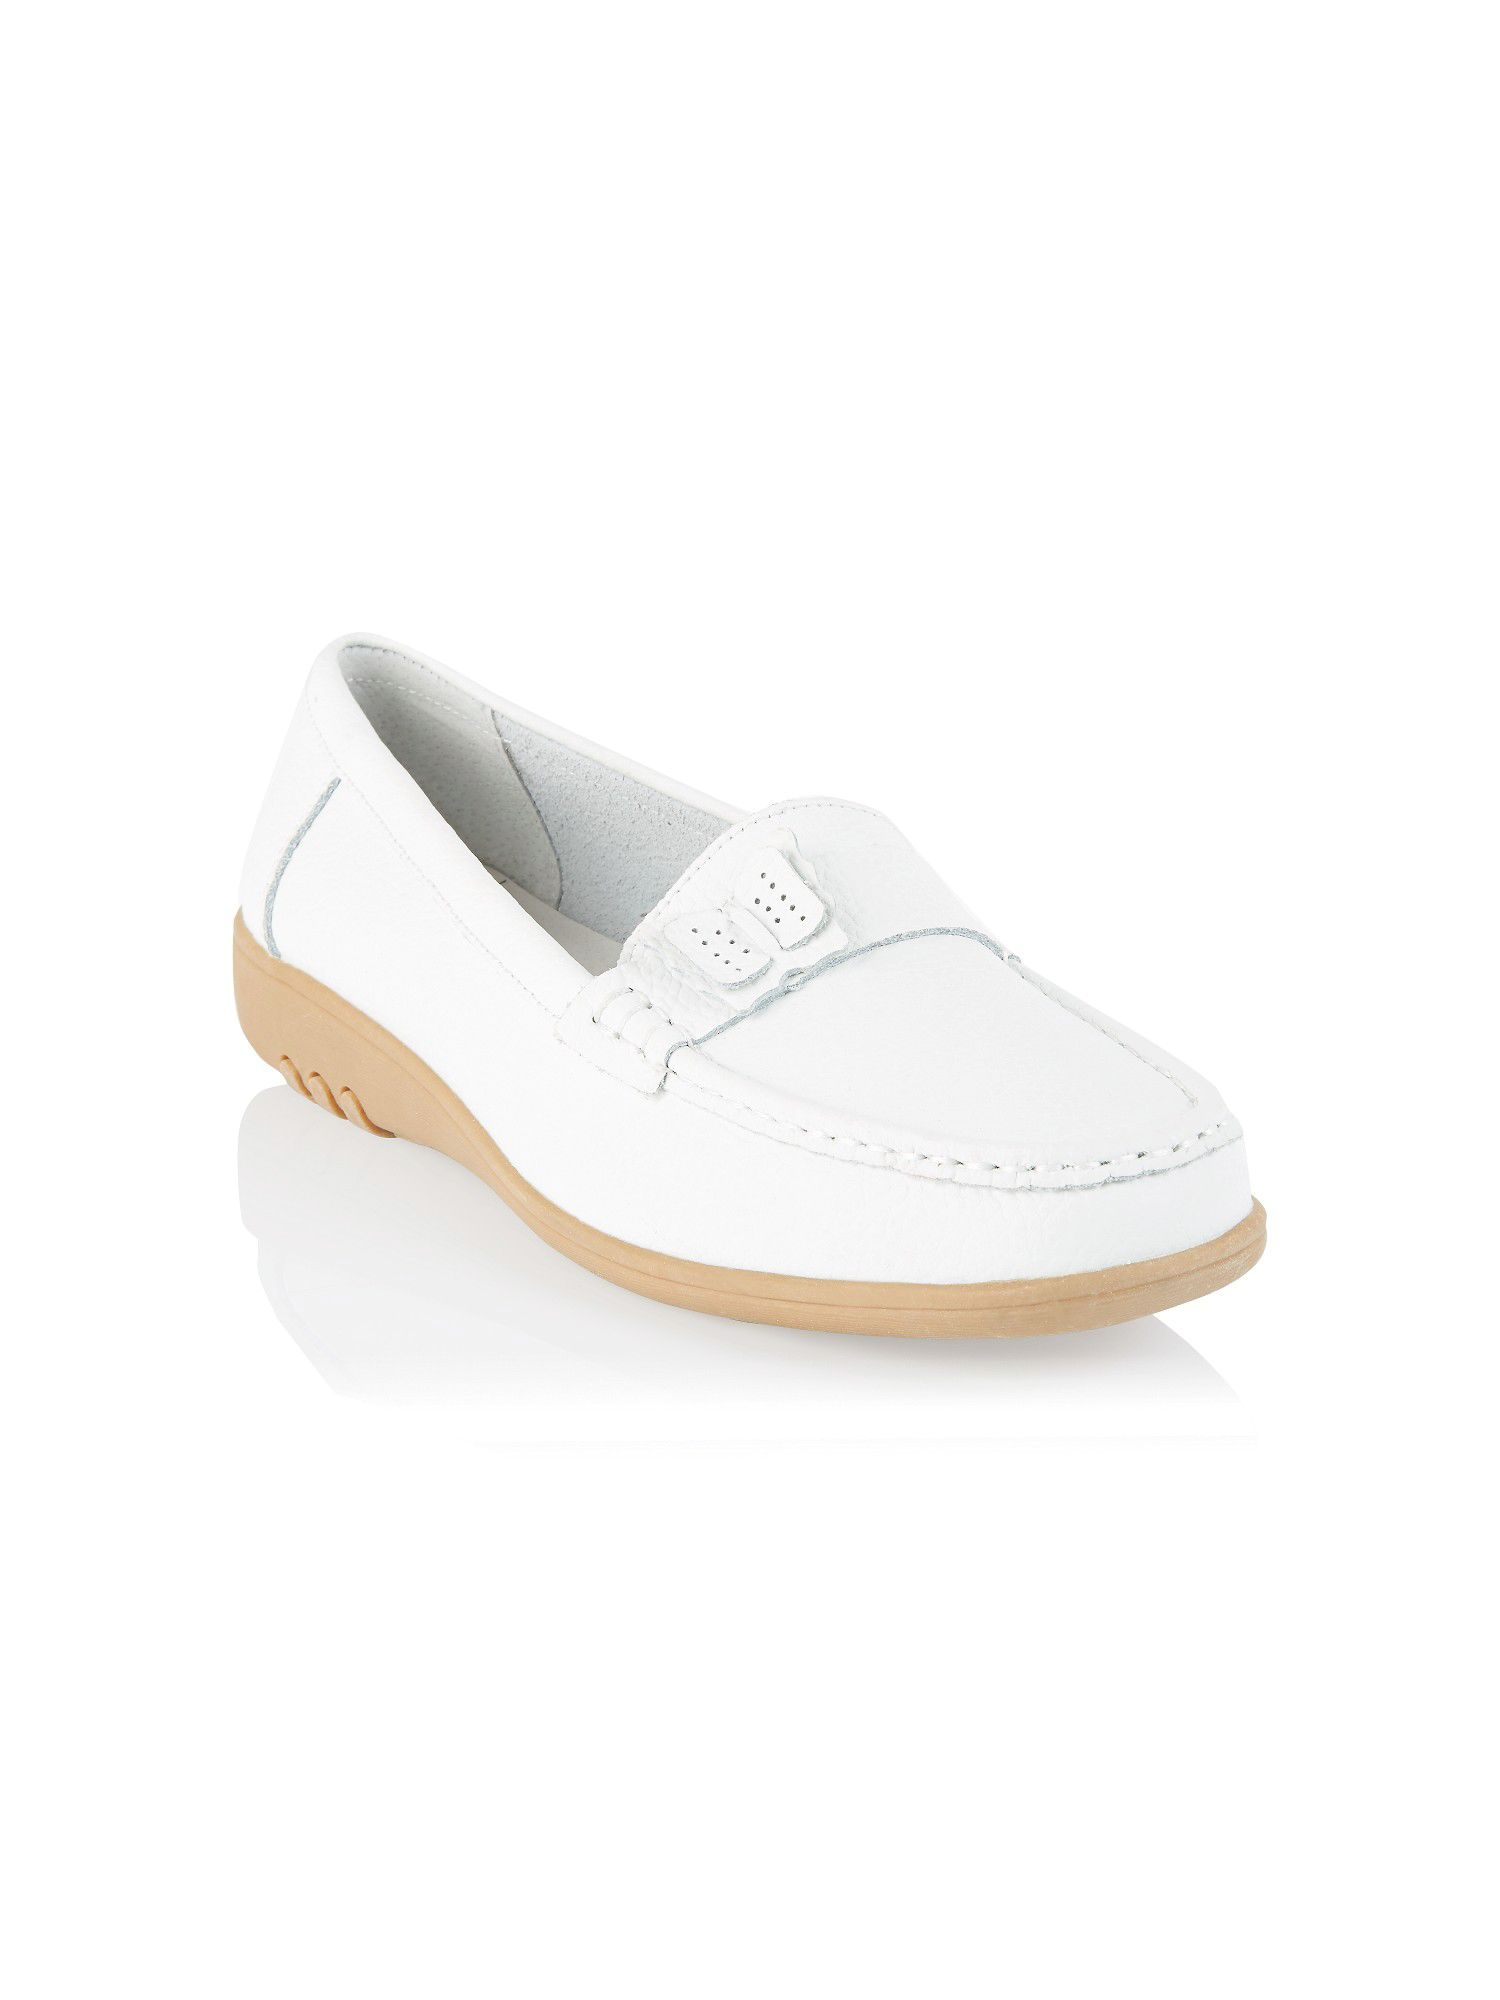 White butterfly leather moccasins